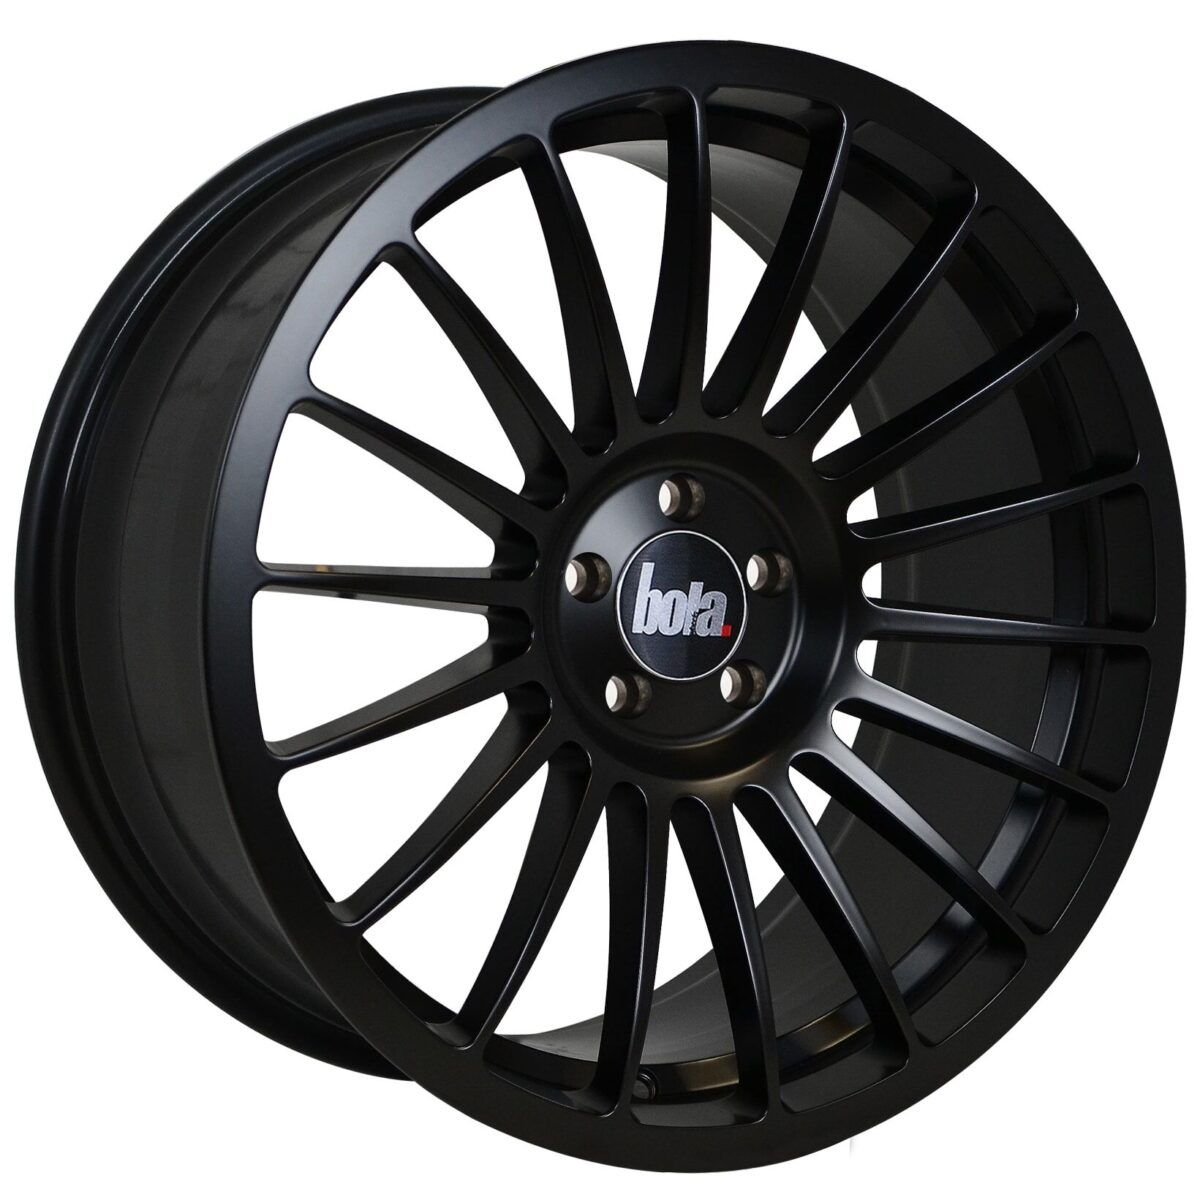 "18"" BOLA B14 Wheels - Matt Black - VW / Audi / Mercedes - 5x112"